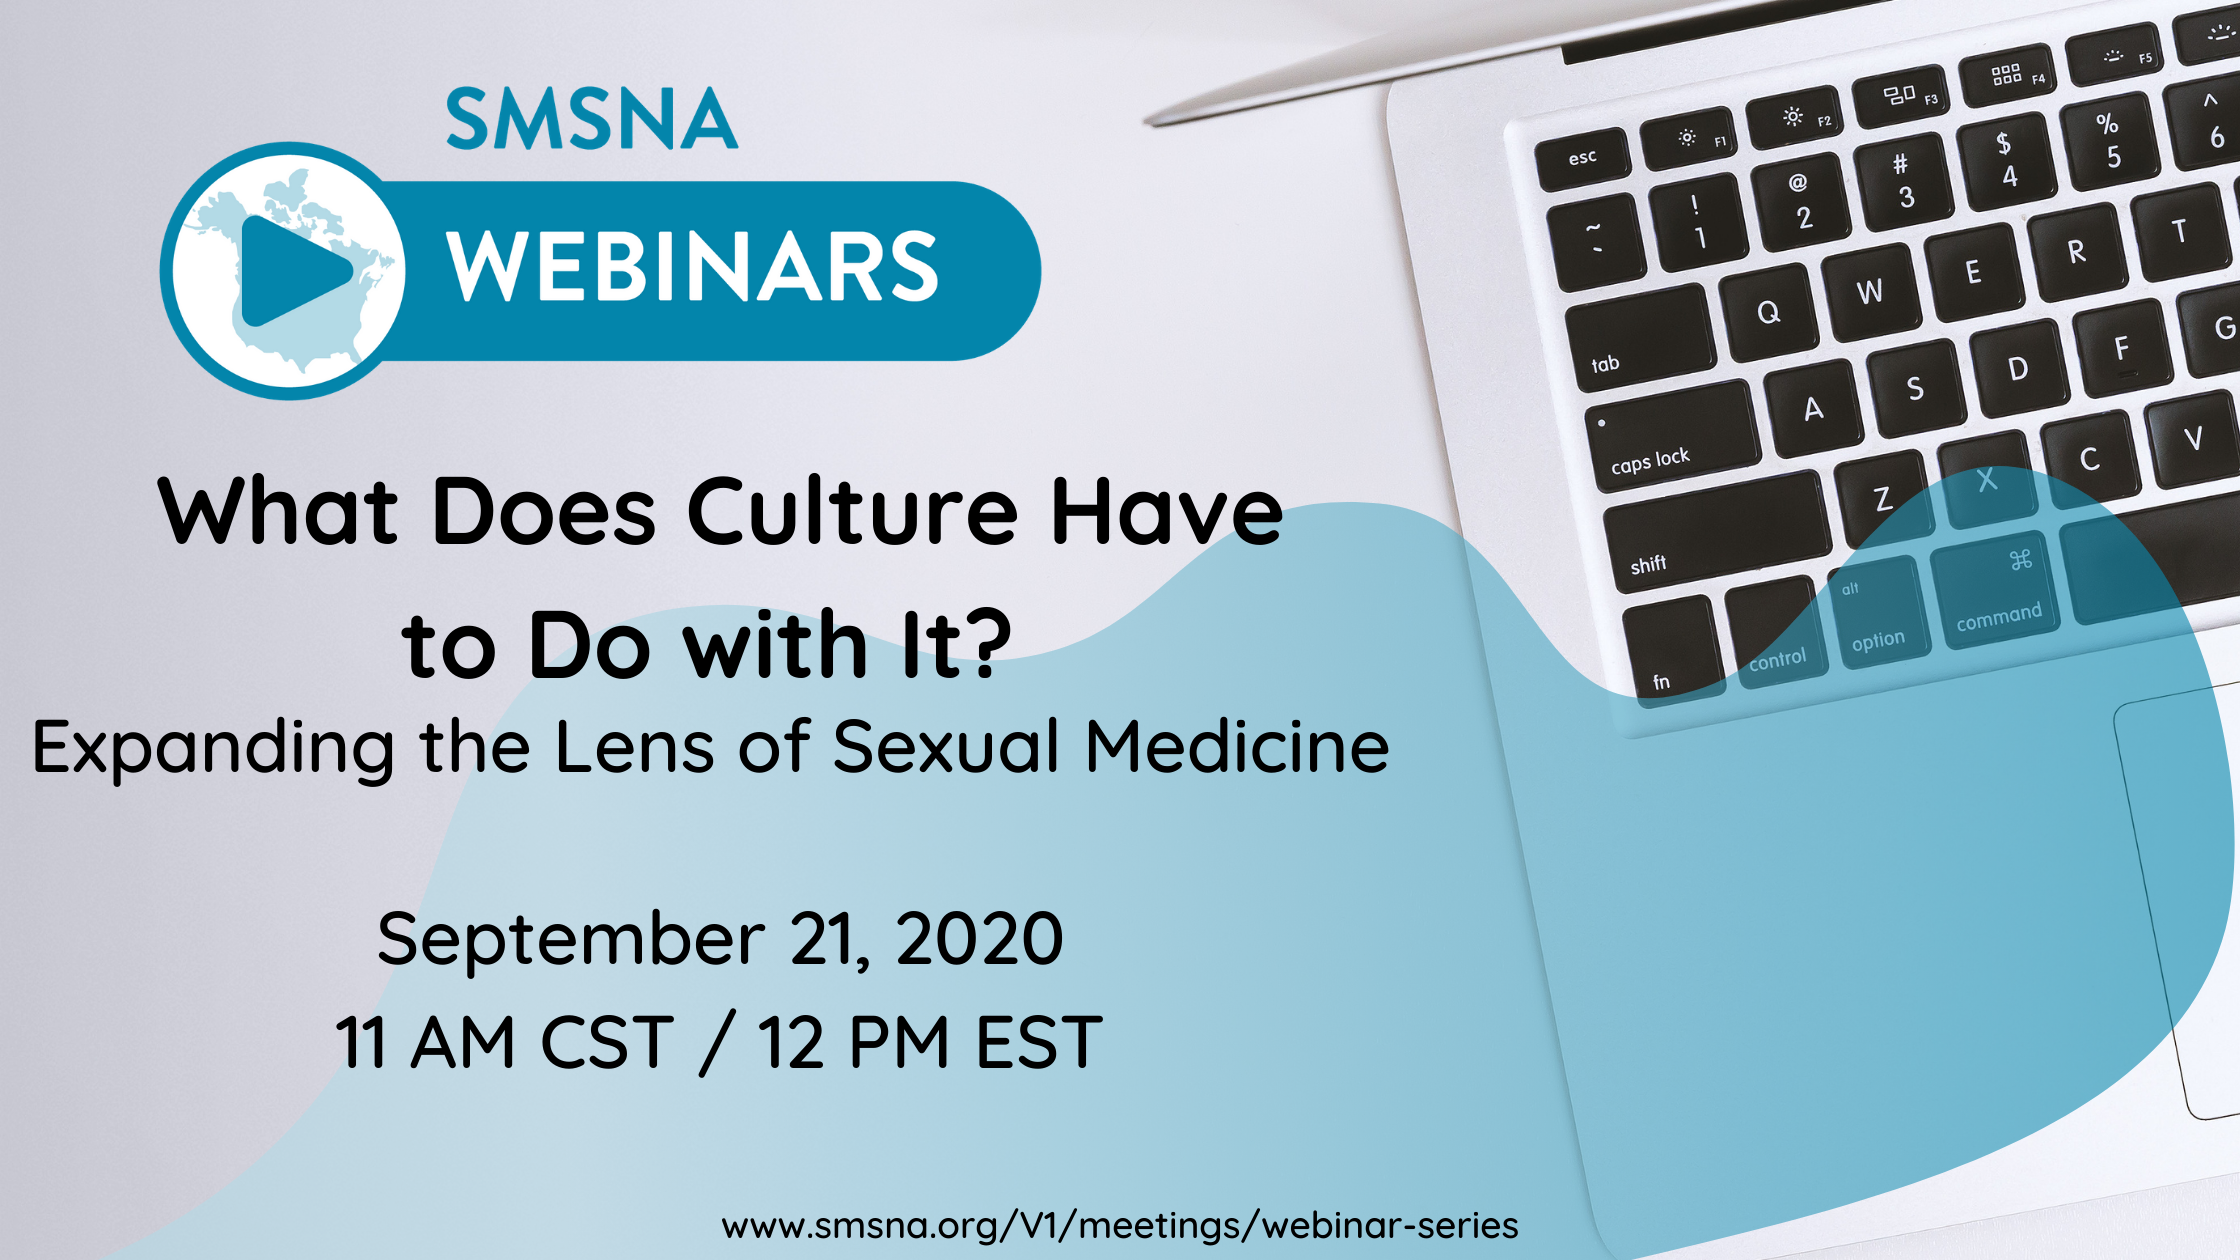 What Does Culture Have to Do with It? Expanding the Lens of Sexual Medicine